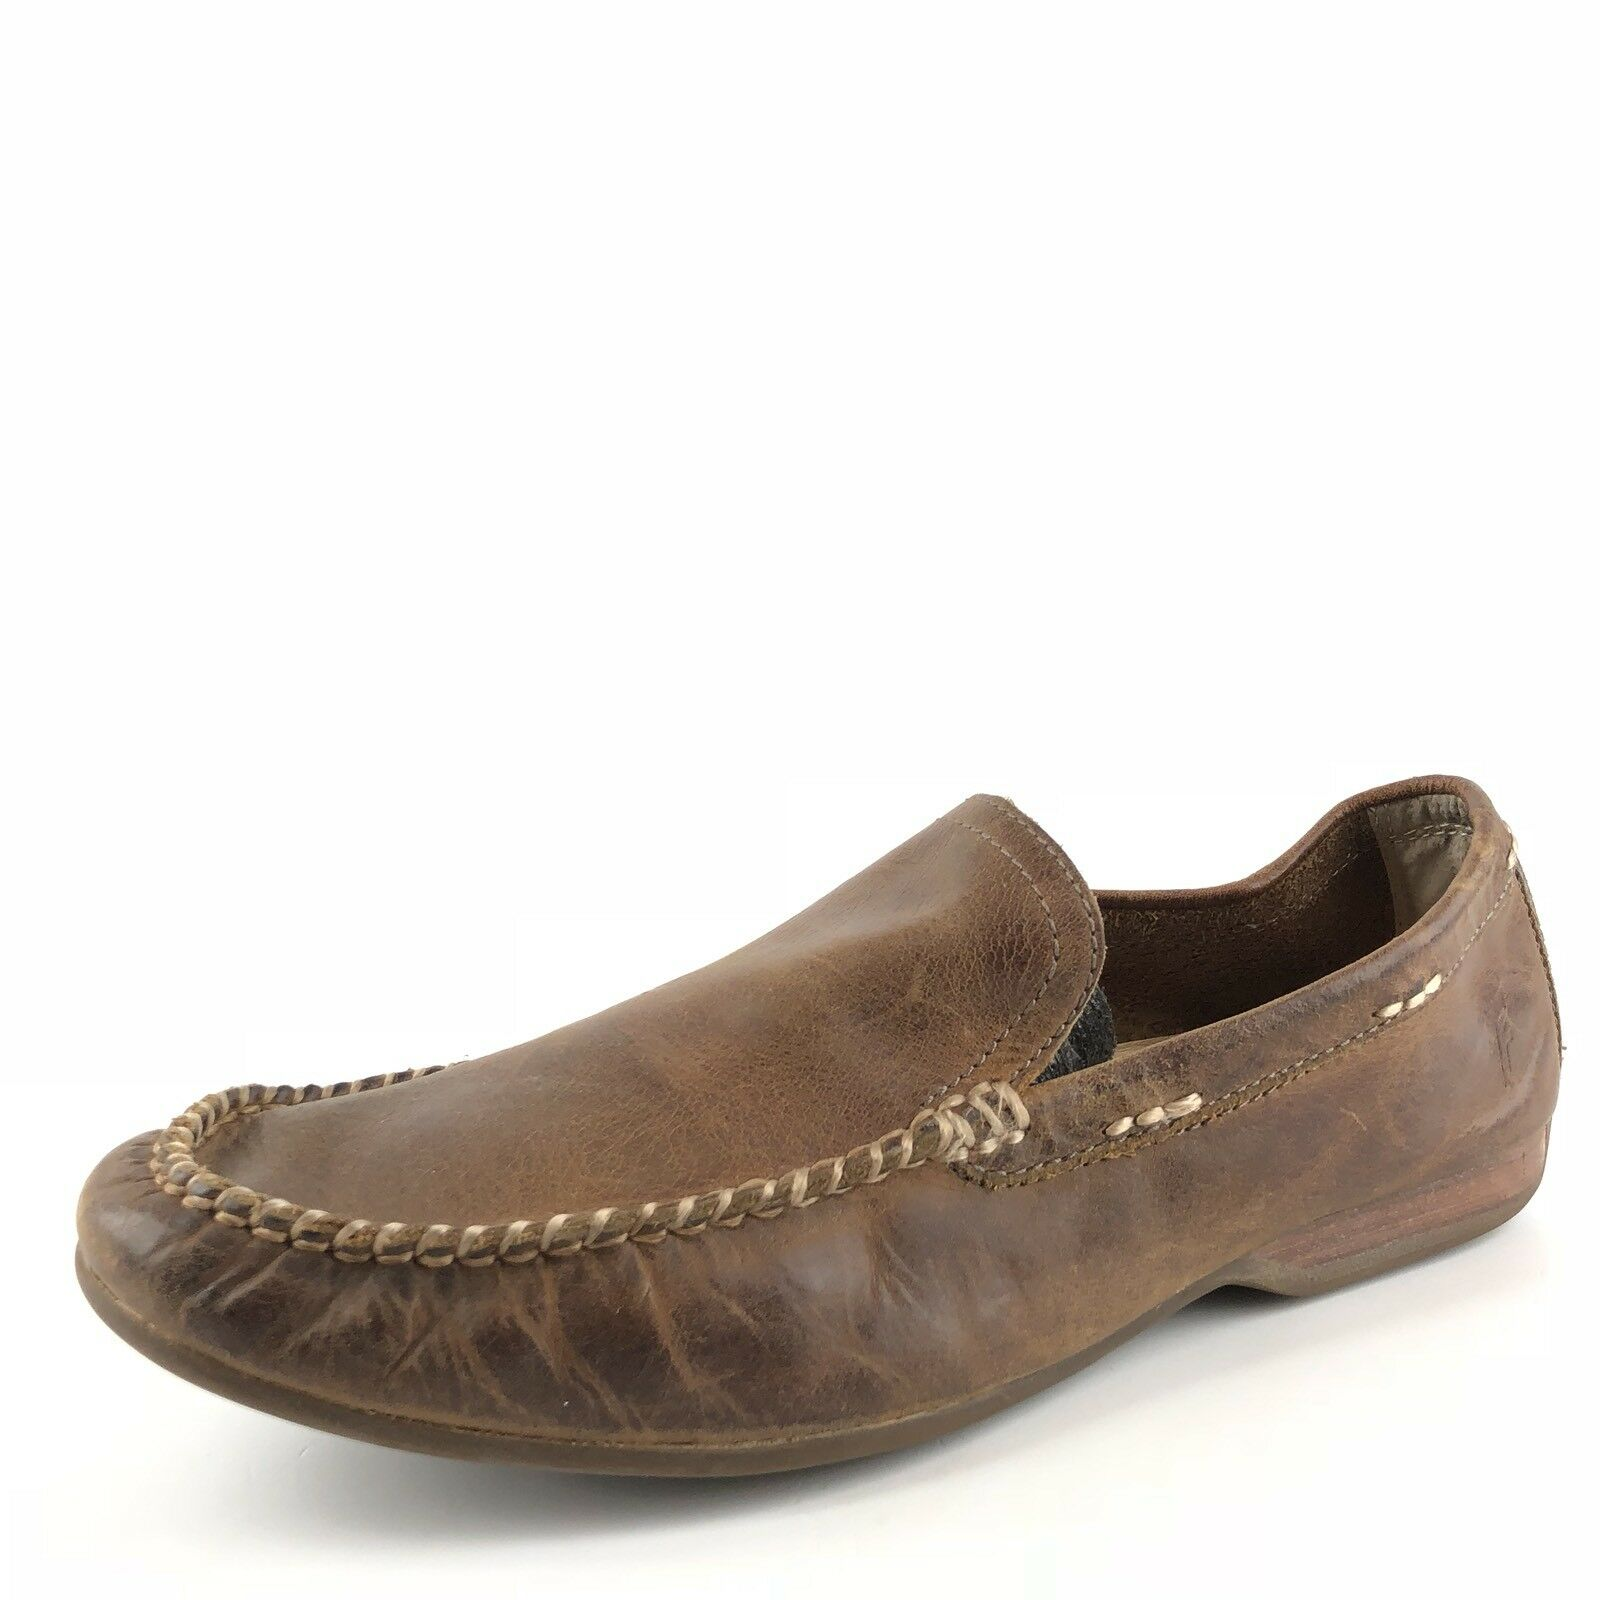 Scarpe casual da uomo  Frye Lewis Venetian Brown Leather Loafers Driving Mocs uomos Size 7.5 M